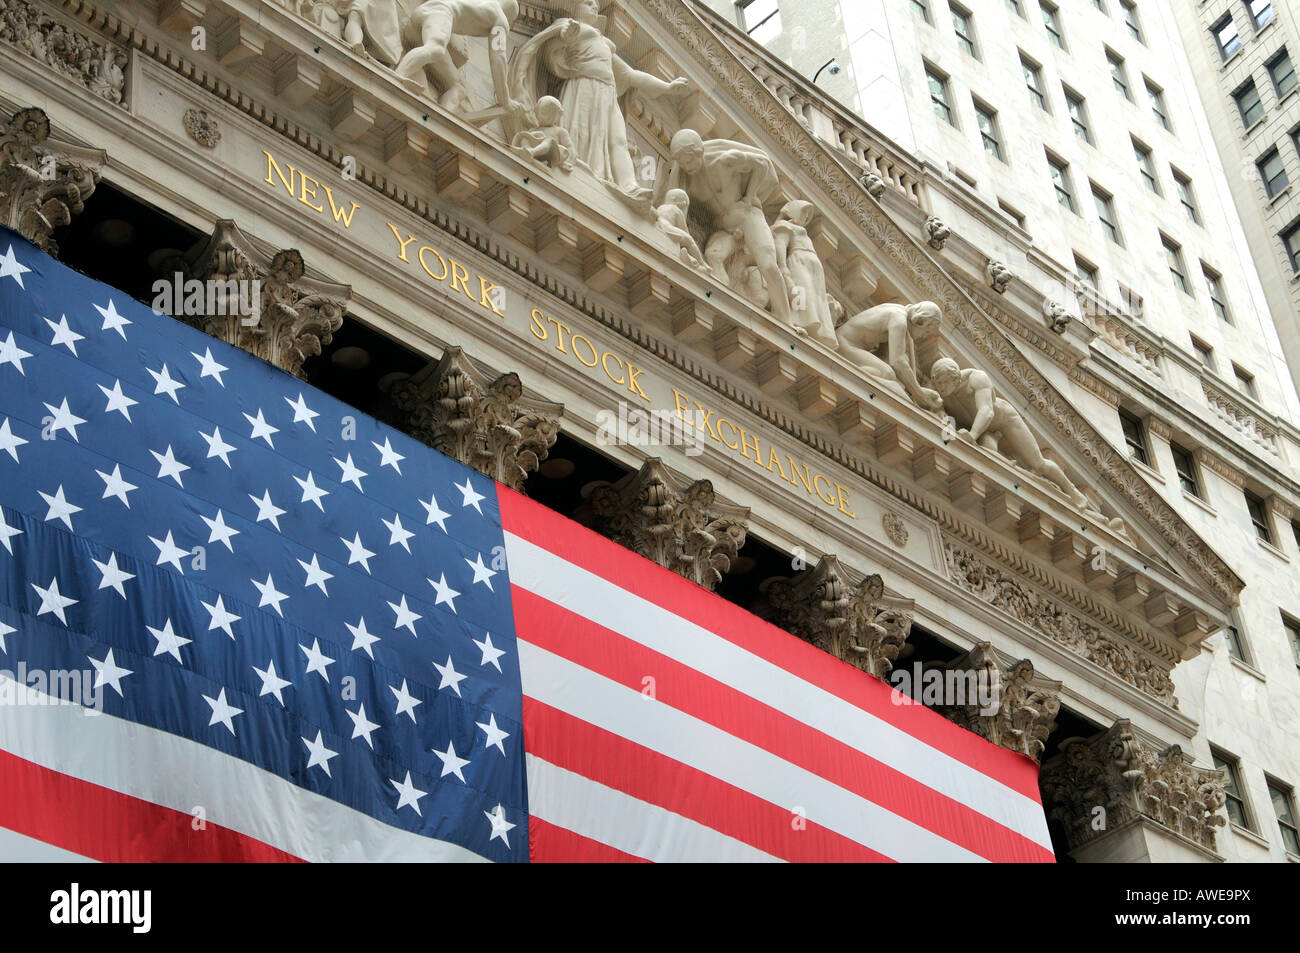 Flag of the United States of America at the New York Stock Exchange, New York, USA - Stock Image